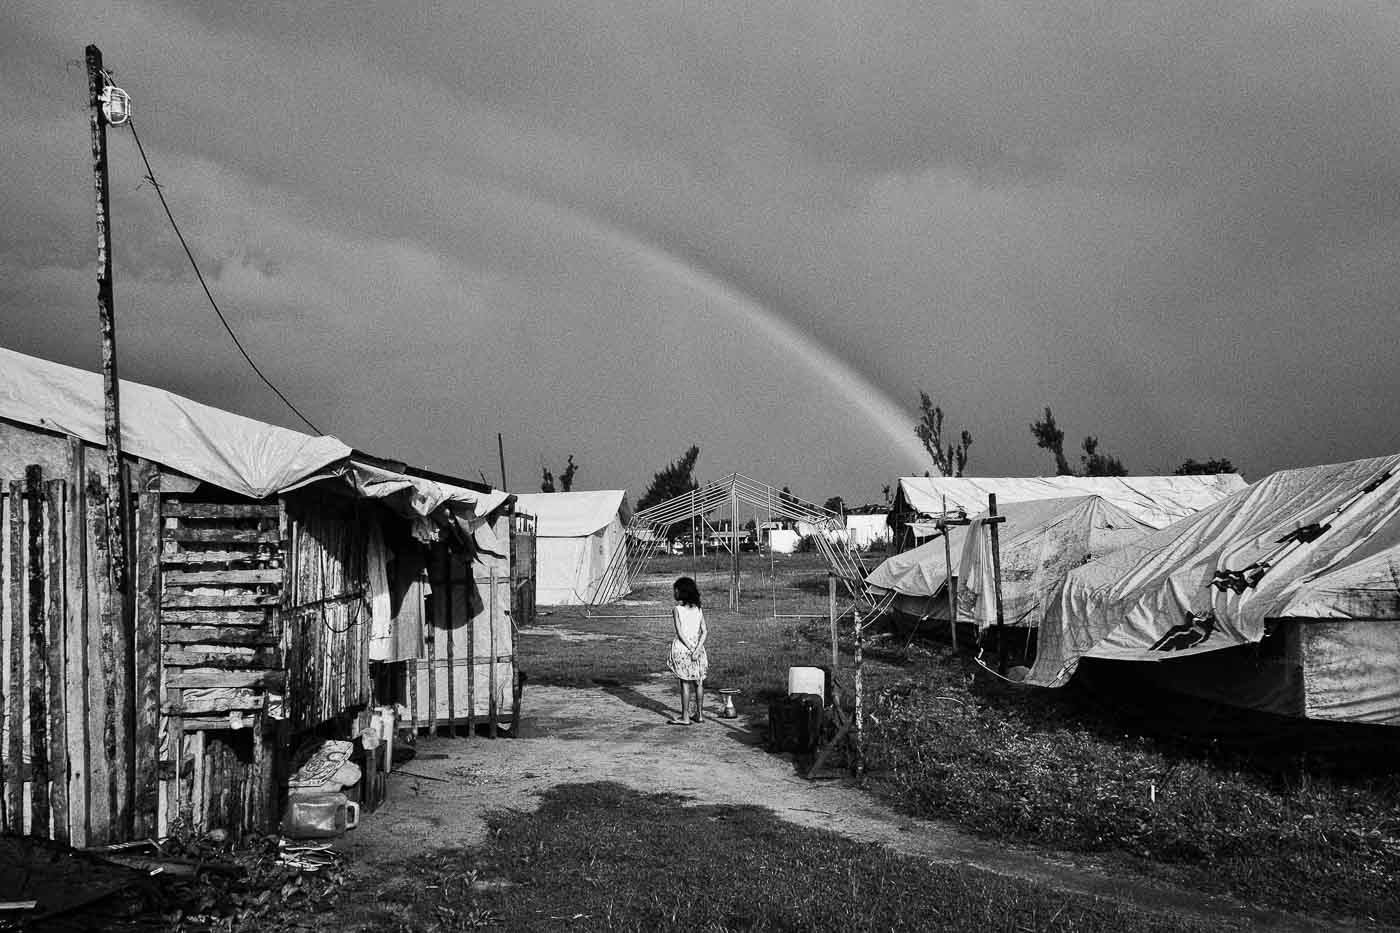 AFTERMATH. One of the underlying threats to those who are displaced by severe weather conditions is violence against women and children living in shelters. All photos by Veejay Villafranca